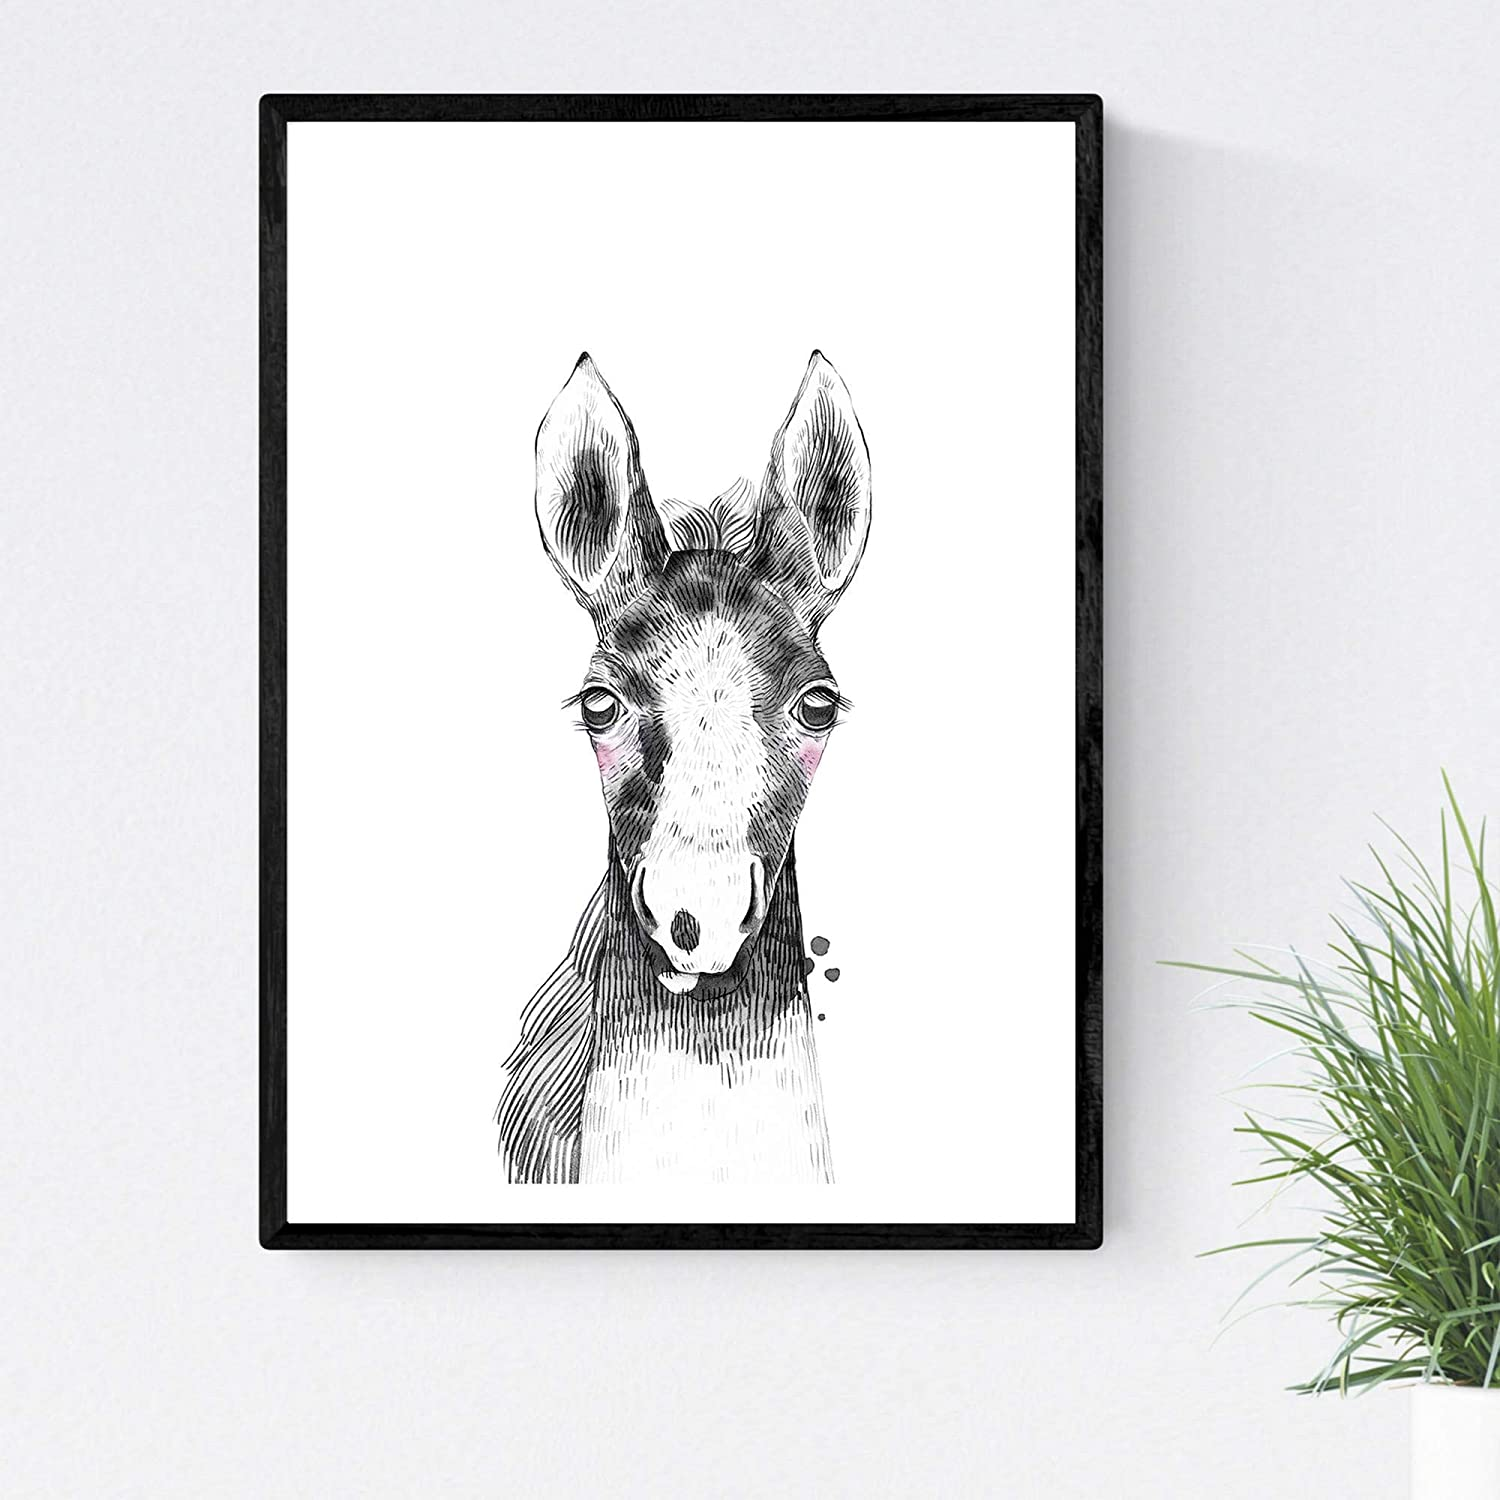 Nacnic Prints Baby Horse - Set of 1-250g Paper - Beautiful Poster Painting for Home Office Living Room